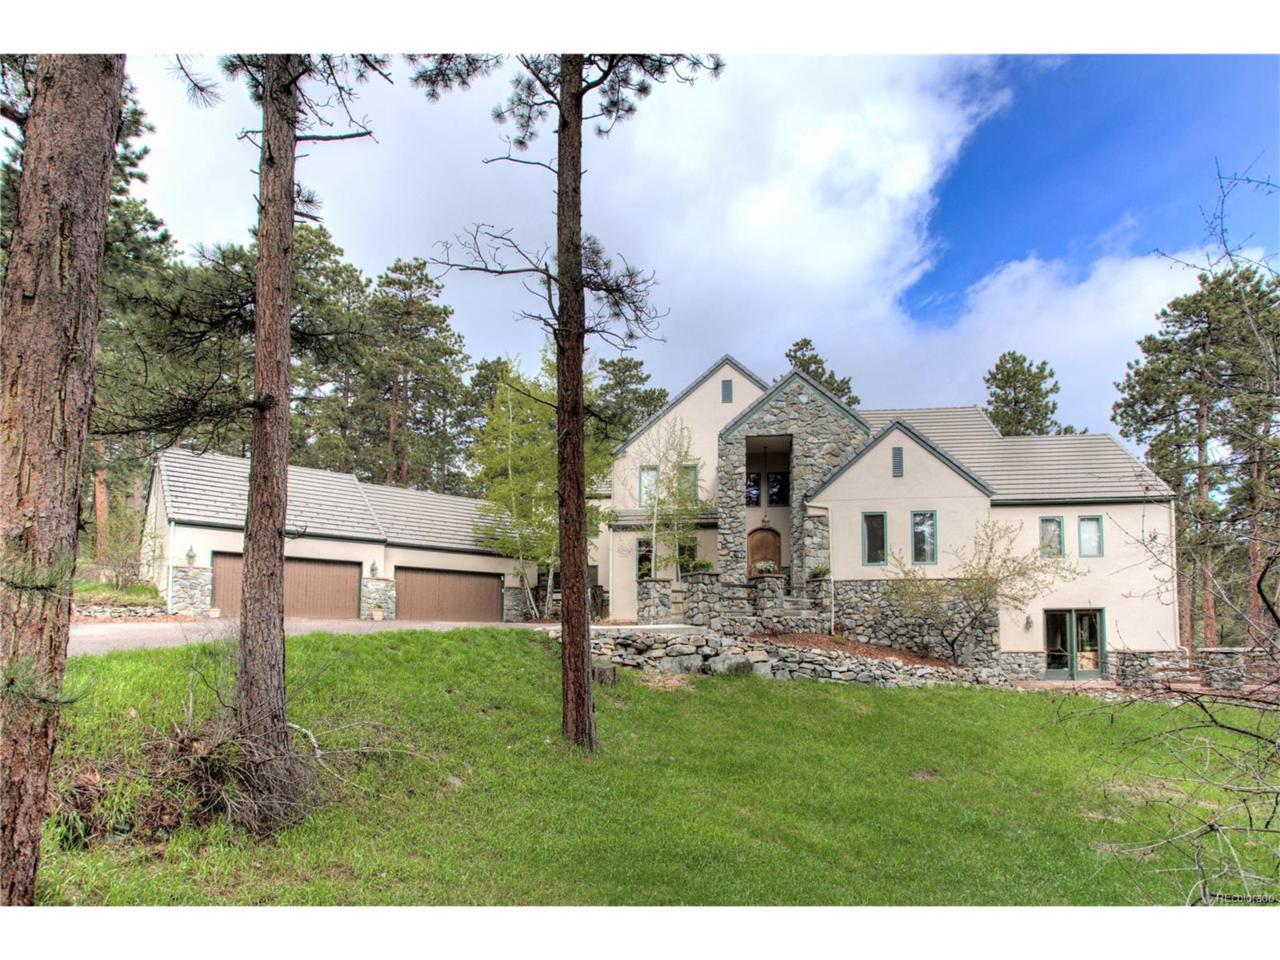 34166 Little Berry Trail, Evergreen, CO 80439 (MLS #9349373) :: 8z Real Estate